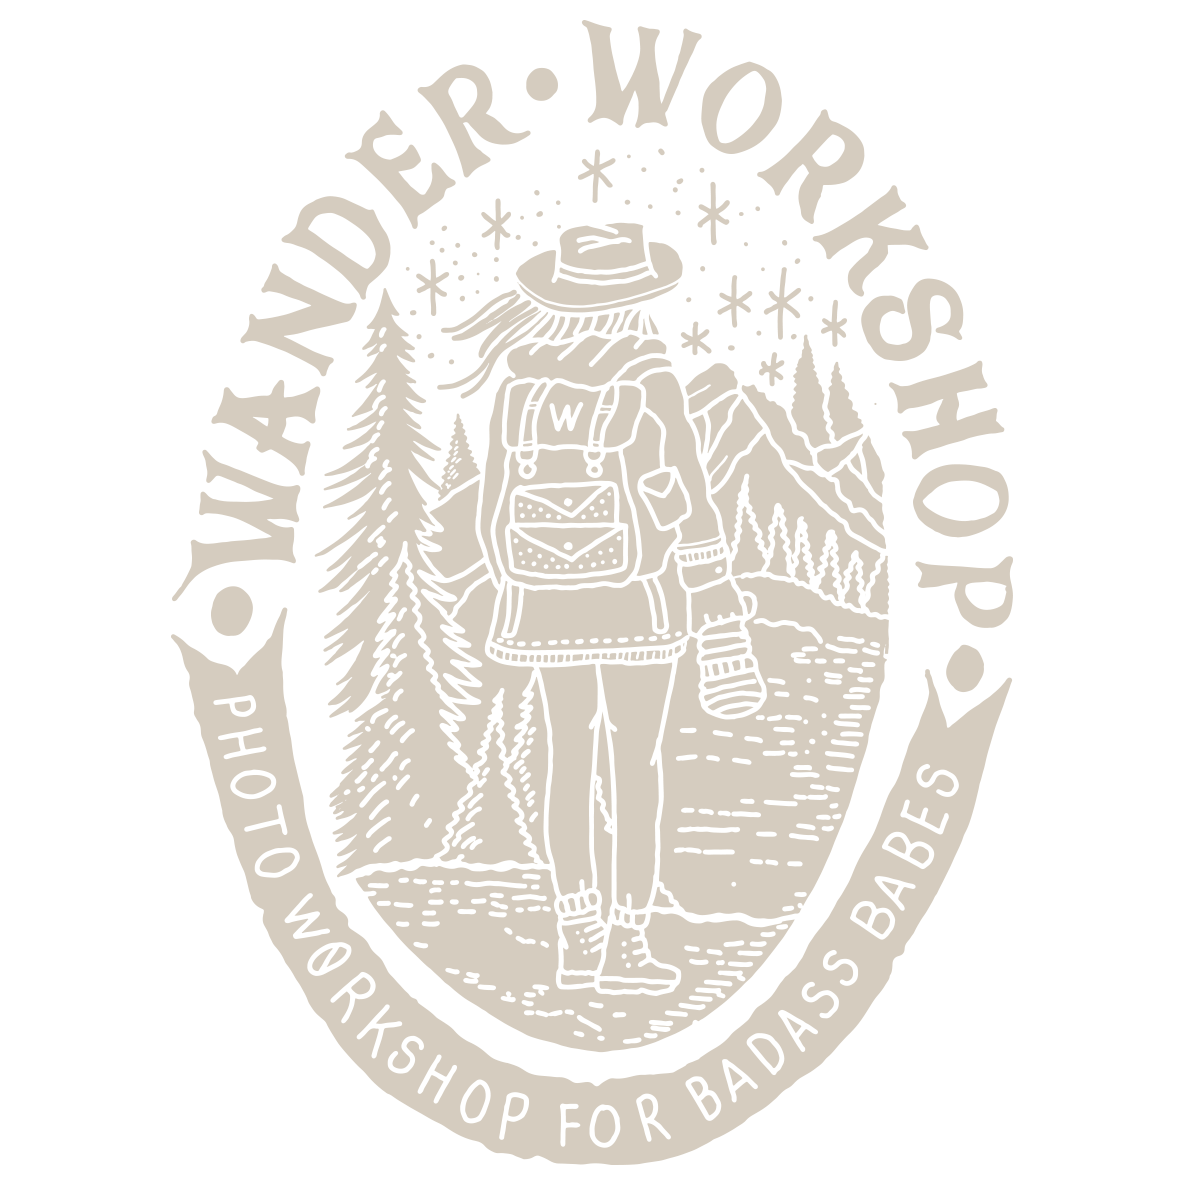 Wander Workshop